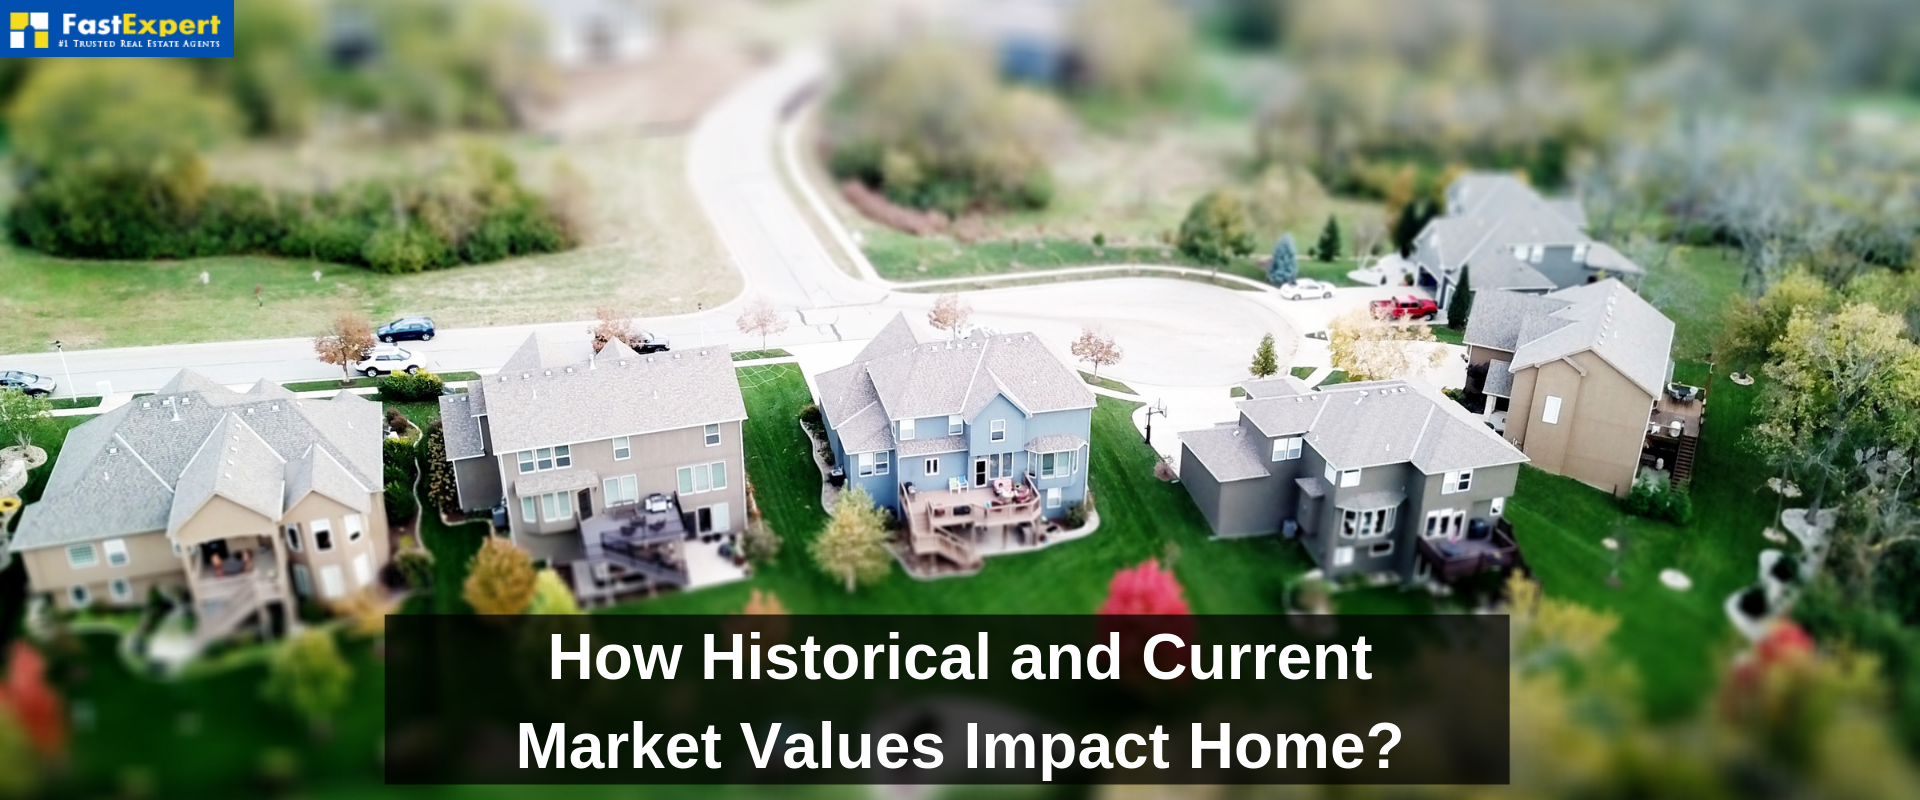 Home Market Value